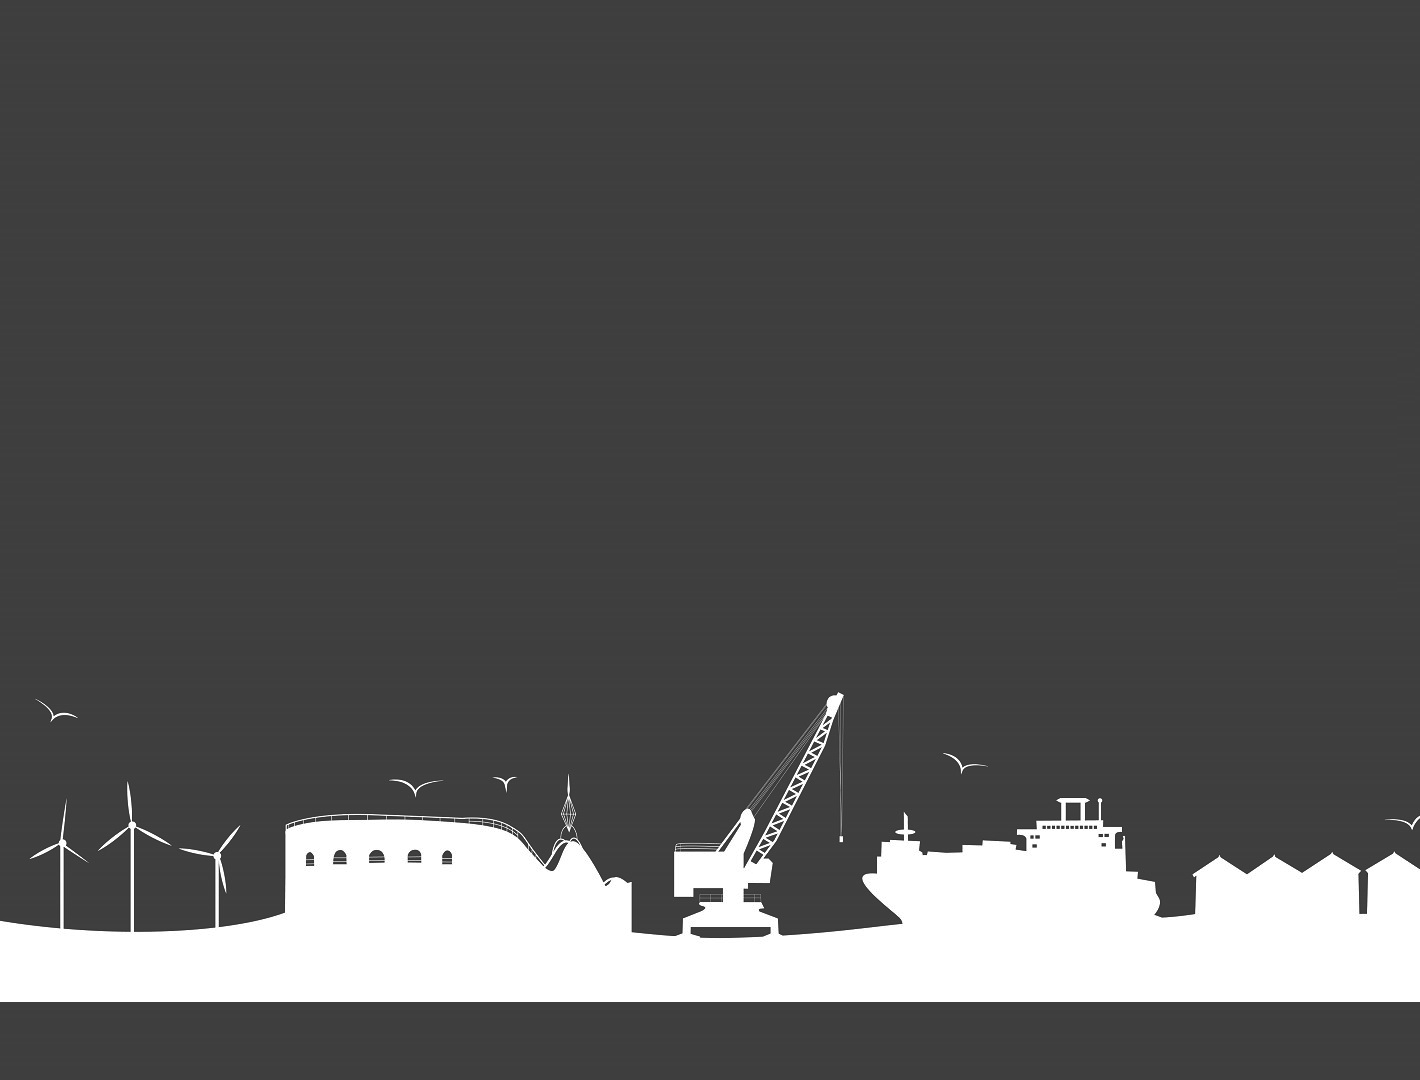 Organisation Image: (East of England Offshore Wind Skills Centre: Ports & Turbines Silhouette)